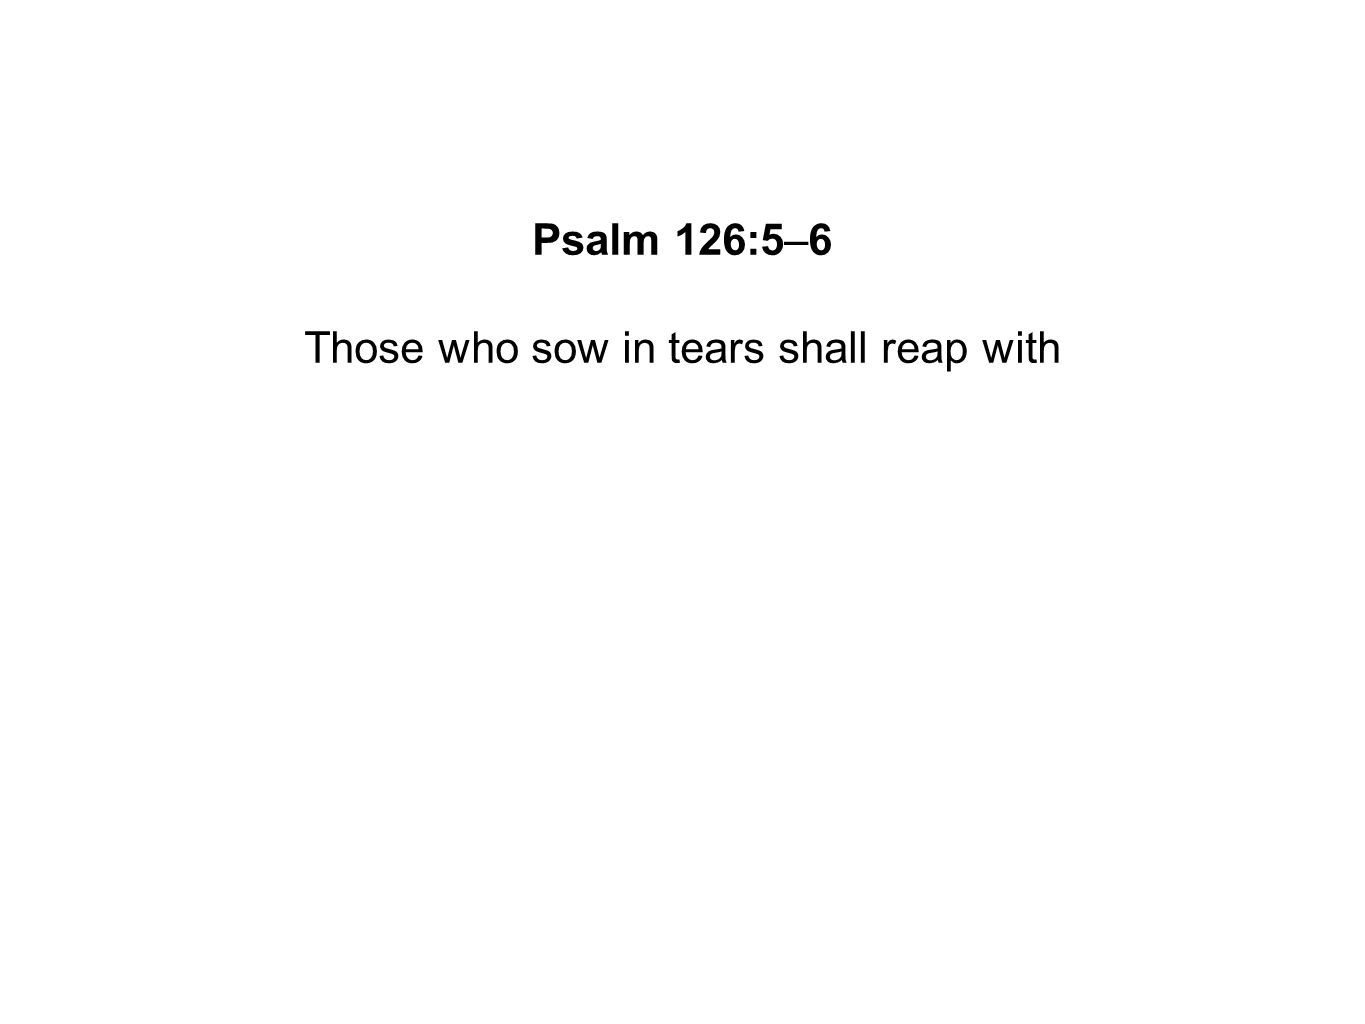 Those who sow in tears shall reap with